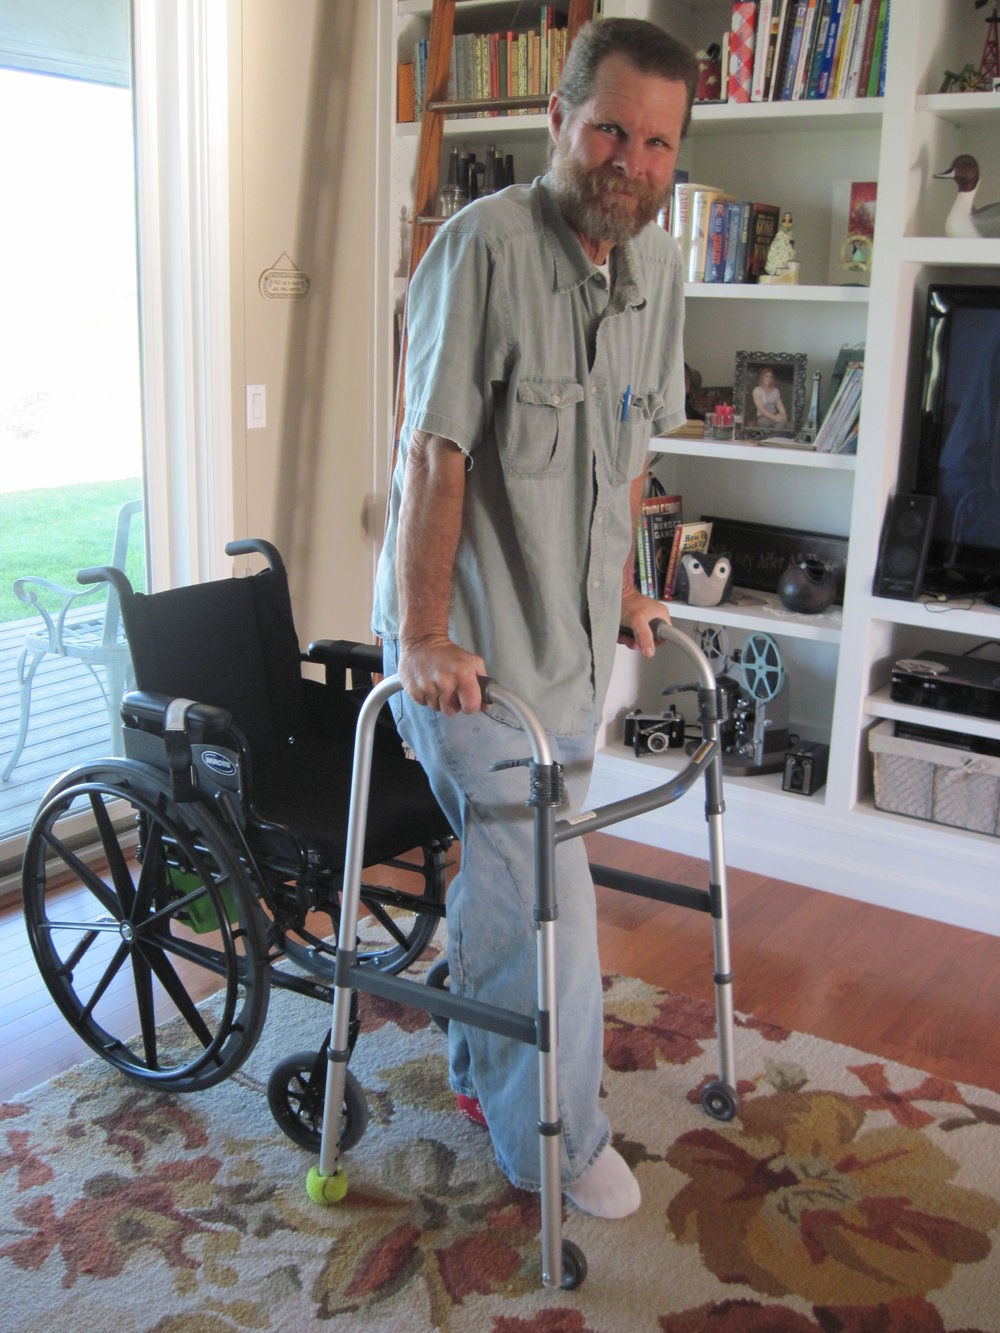 Working his way out of the wheelchair